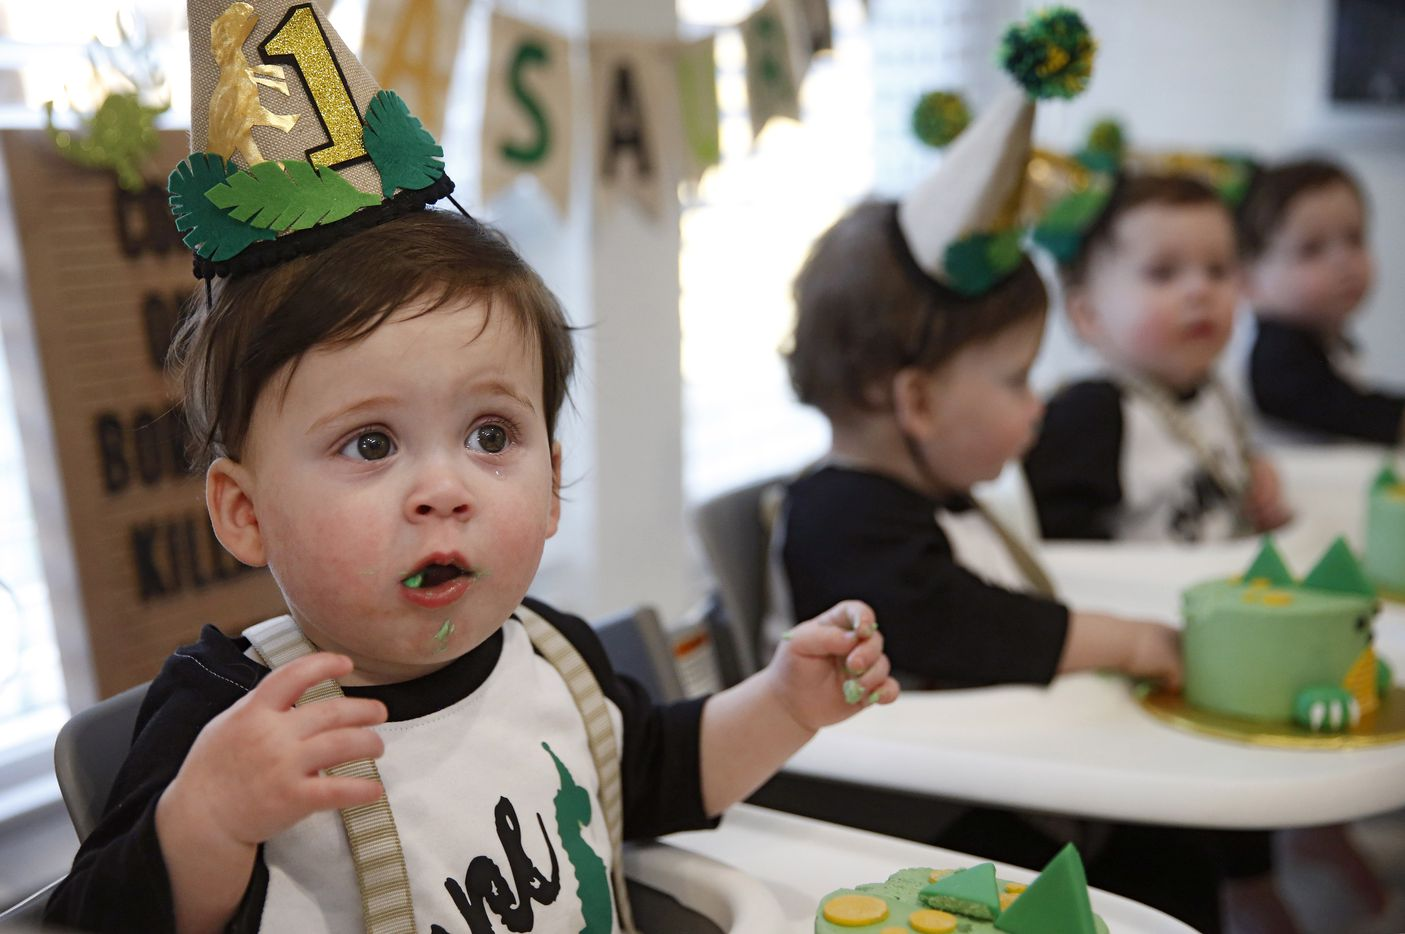 Harrison Marr reacts as he tastes icing on the cake along with his brothers Hardy, Henry, and Hudson Marr during their one year birthday party at their home on Monday, March 15, 2021in Grapevine, Texas.